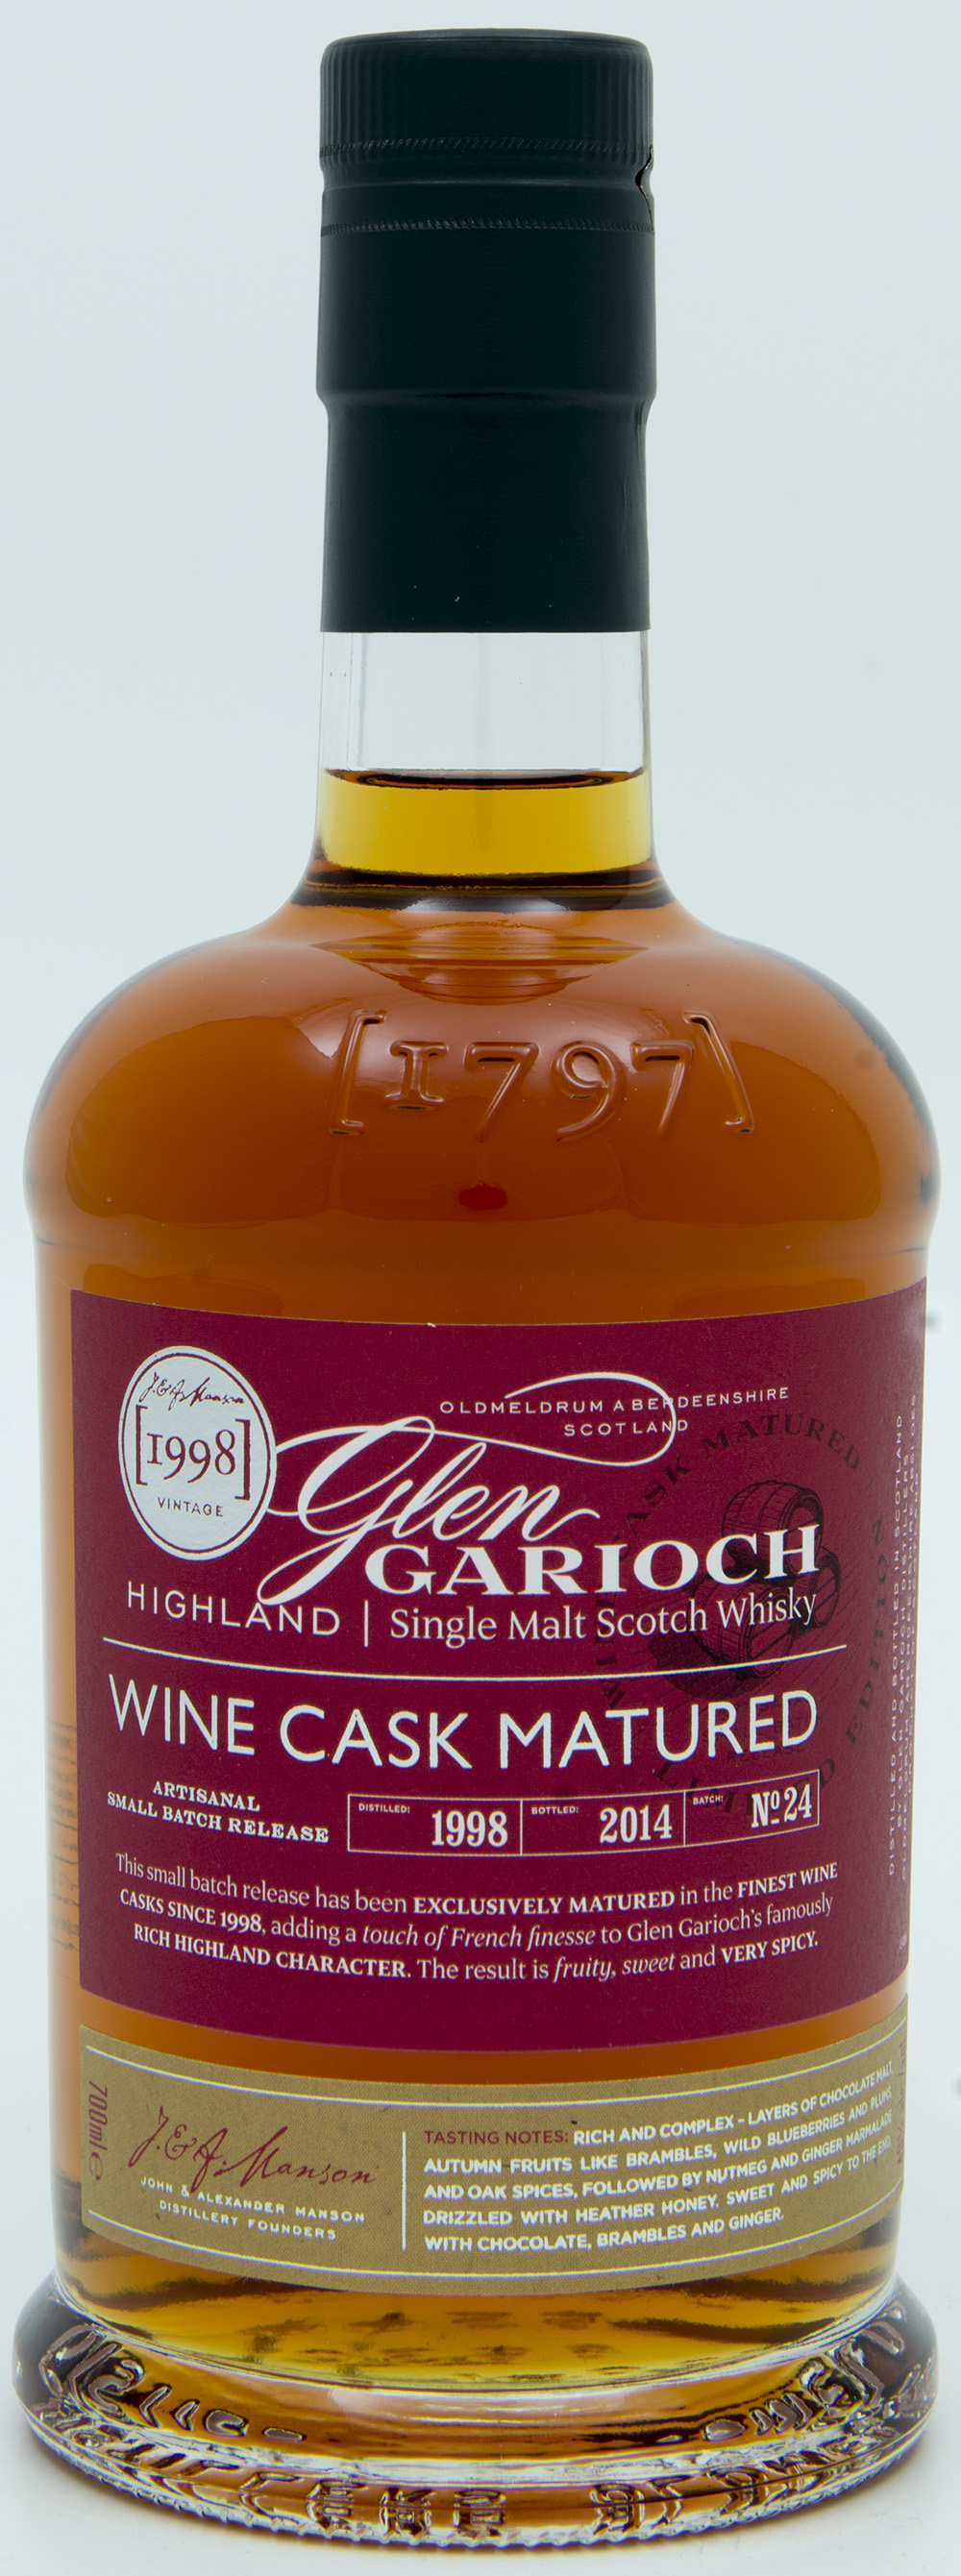 Billede: DSC_6567 Glen Garioch Batch 24 - Wine cask Matured 1998 - 2014 - bottle front.jpg